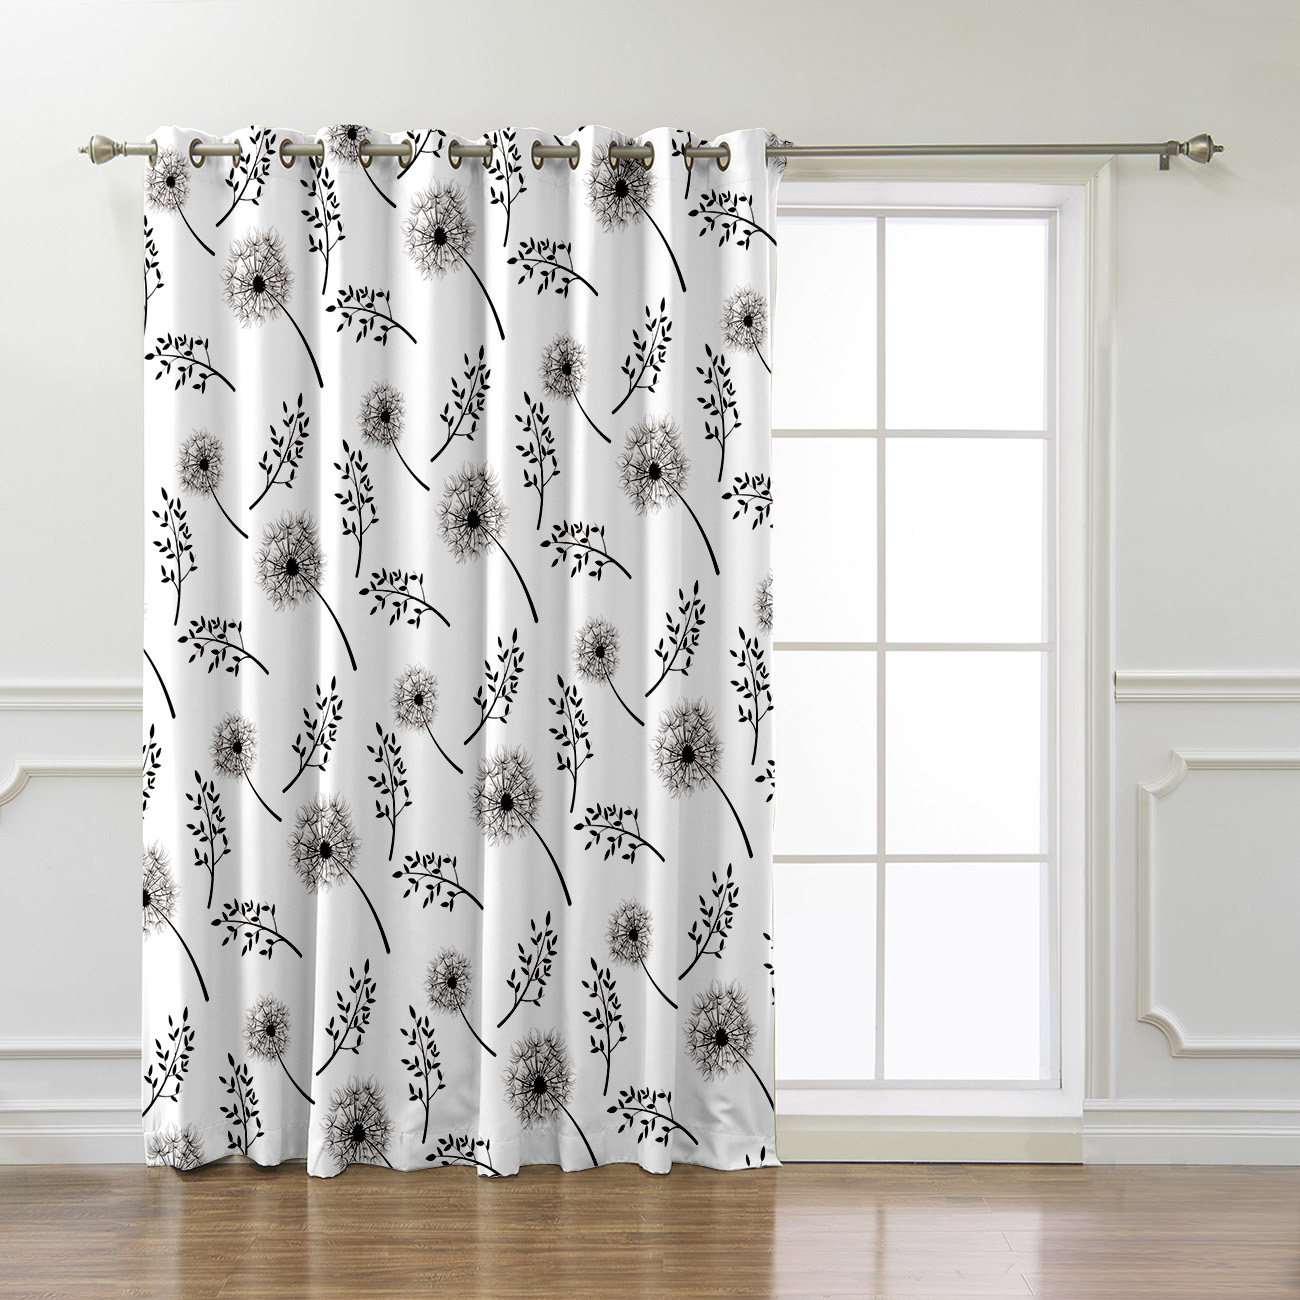 Lovely Dandelion Plant Window Treatments Curtains Valance Room Curtains Large Window Curtain Rod Bathroom Blackout Outdoor